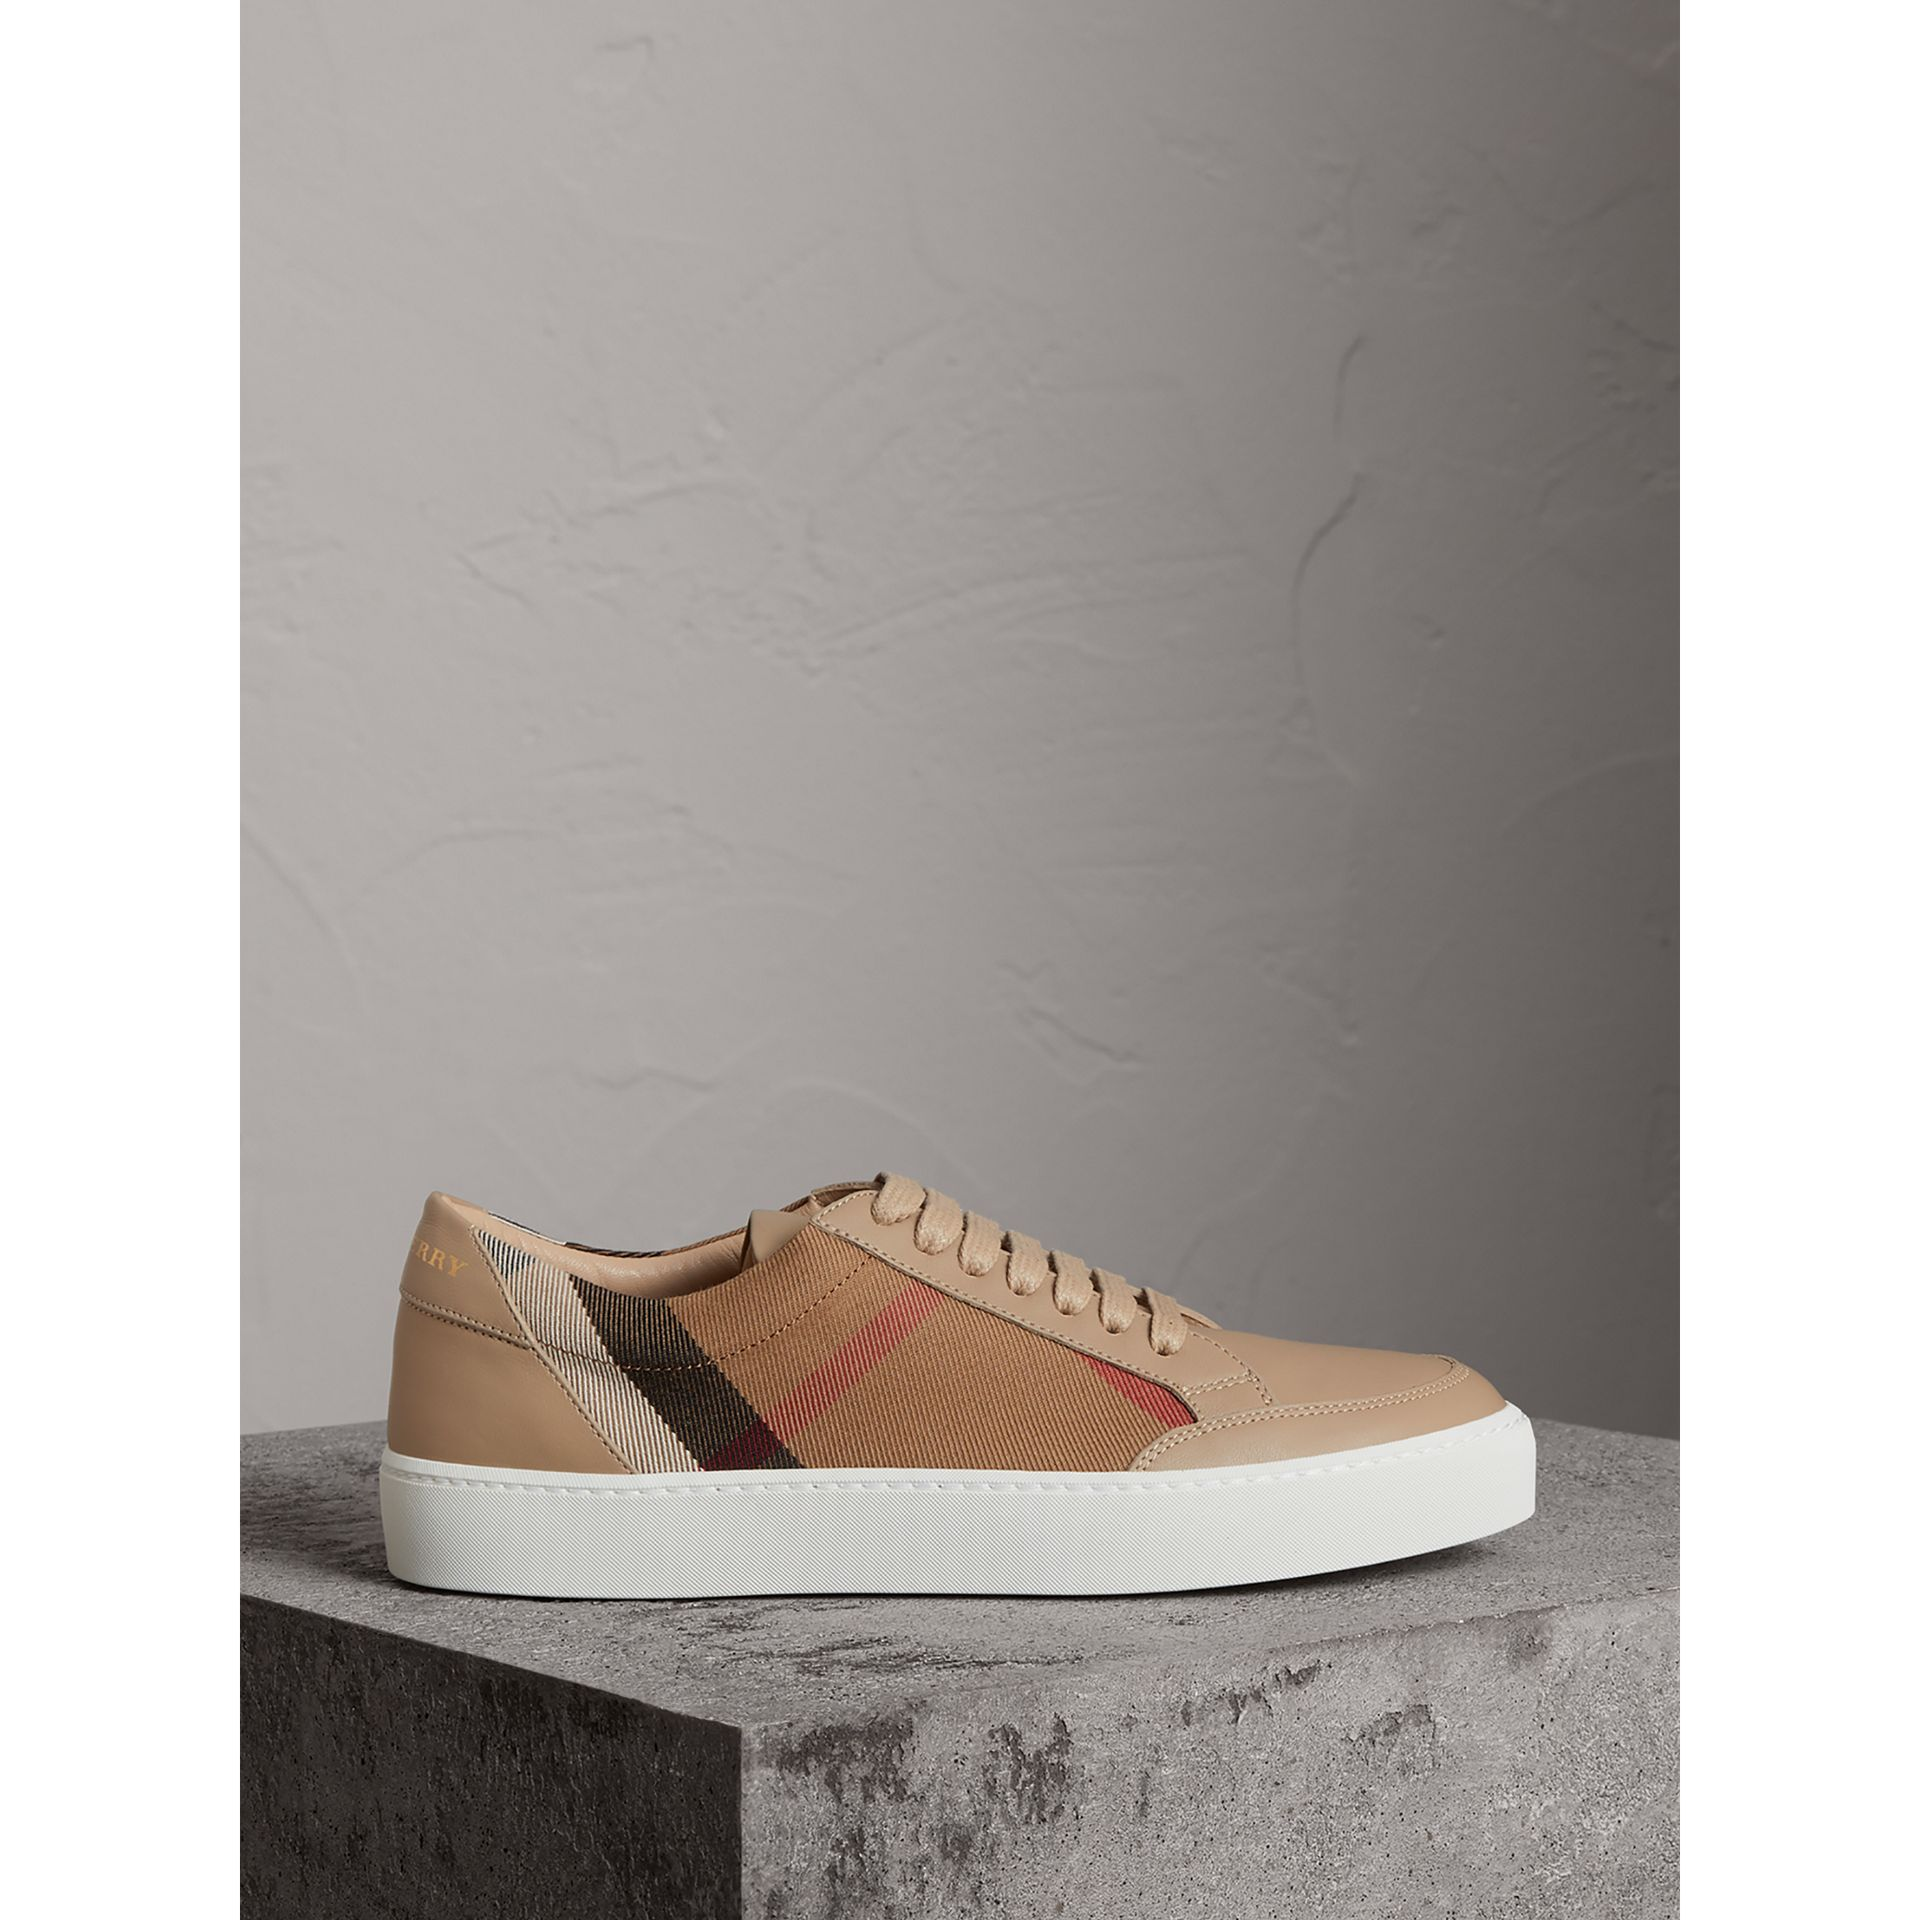 Check Detail Leather Trainers in House Check/ Nude - Women | Burberry Australia - gallery image 3